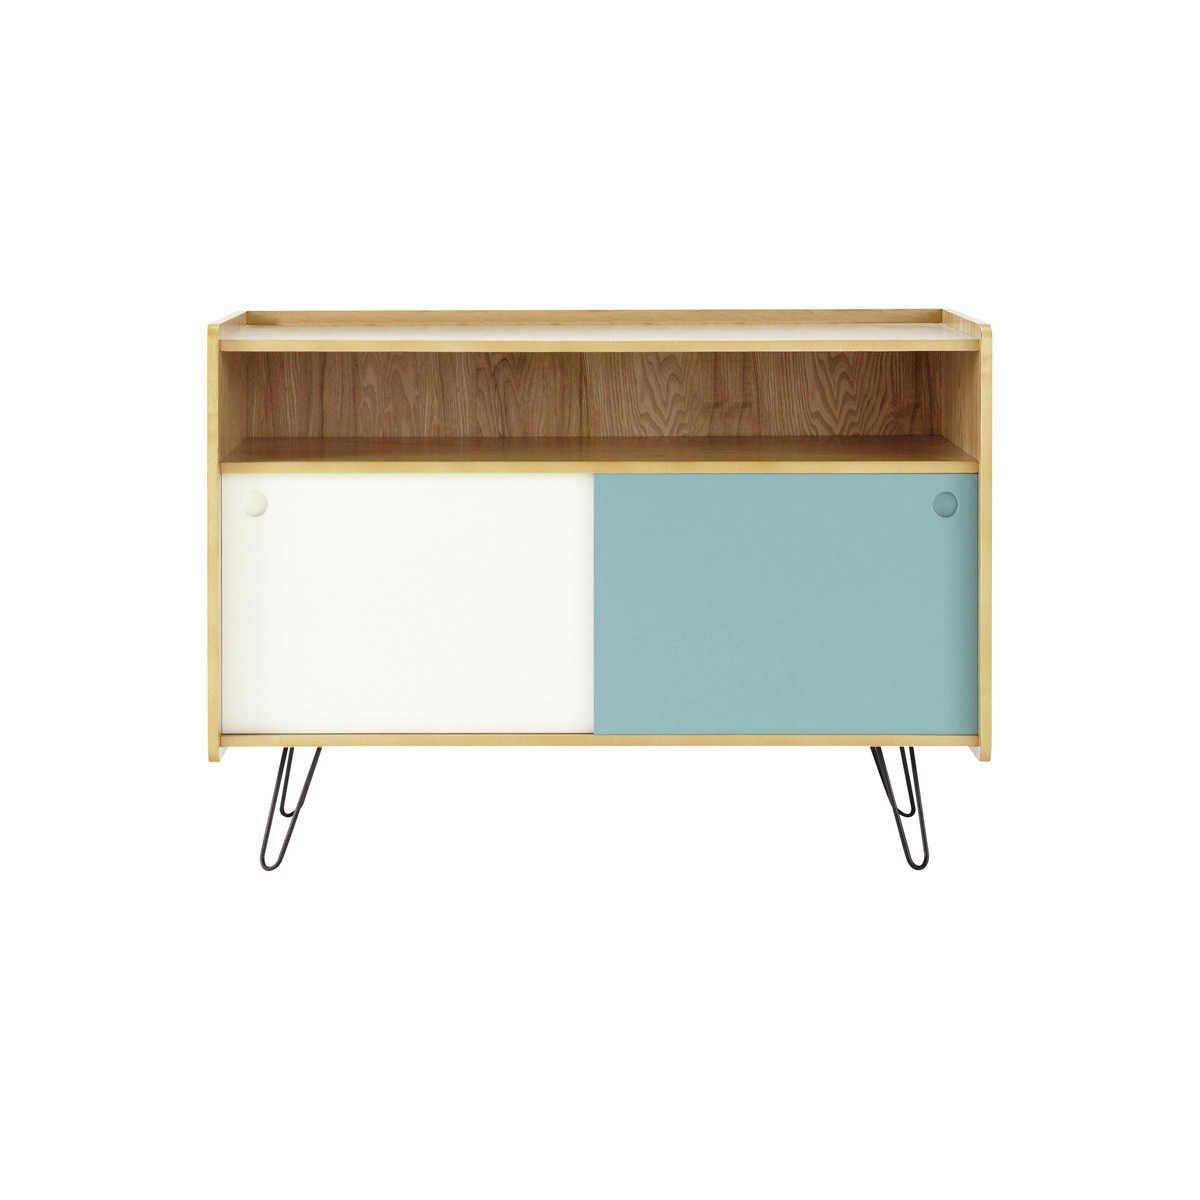 meuble tv vintage en bois blanc et bleu l 105 cm home. Black Bedroom Furniture Sets. Home Design Ideas